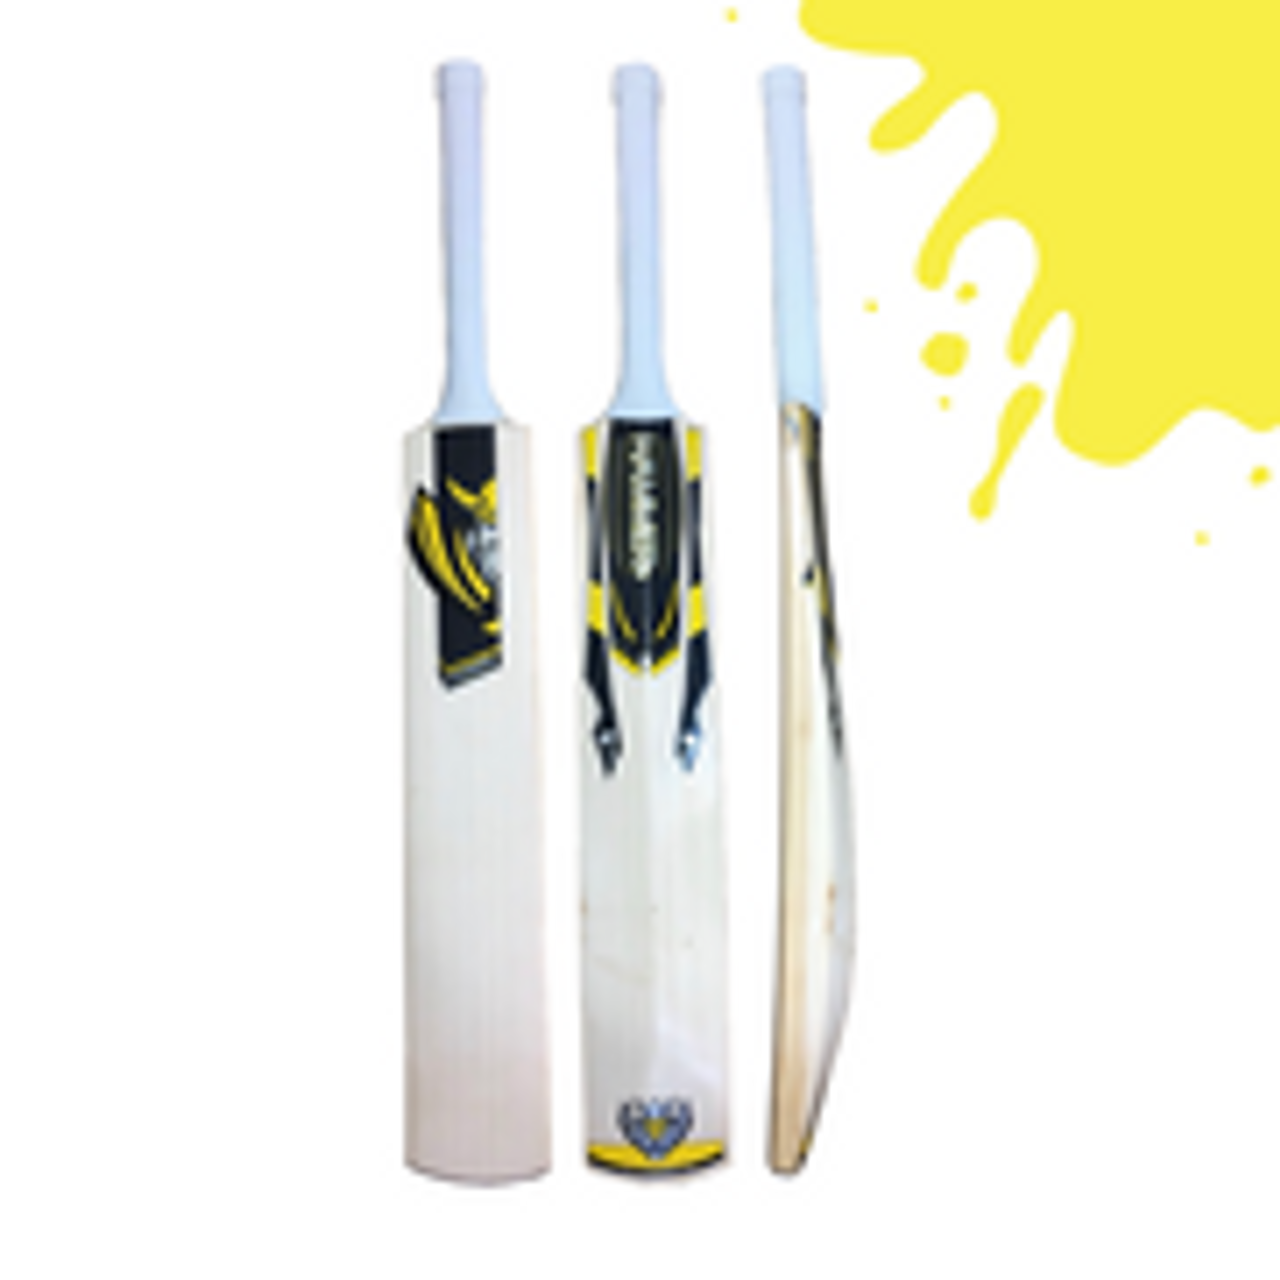 Vapor Cricket Bats